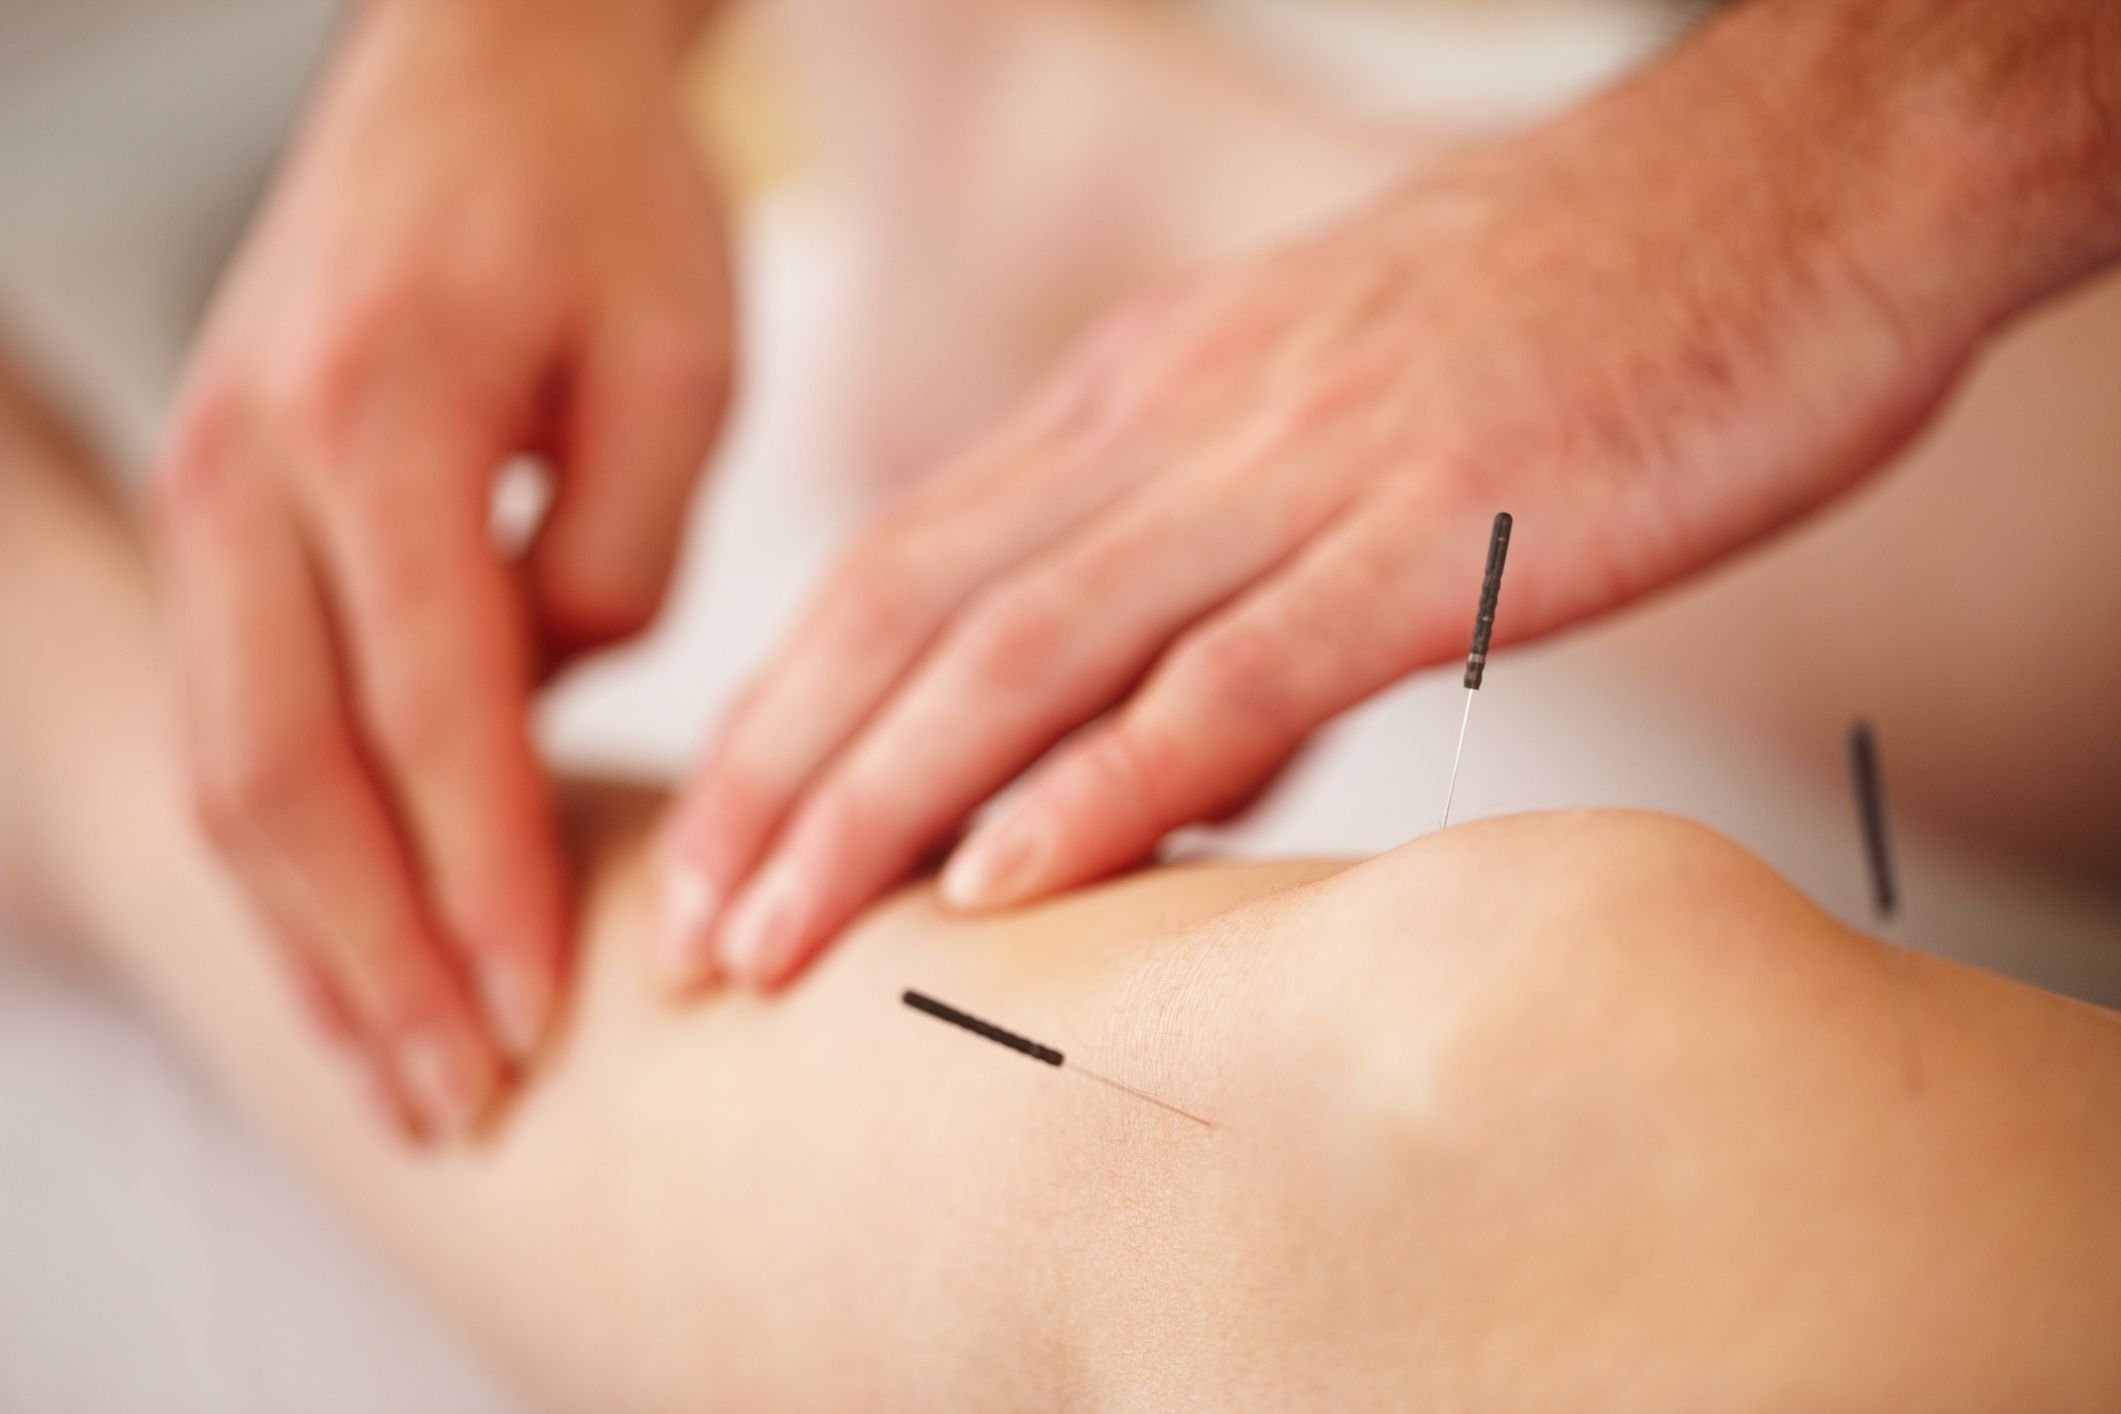 Acupuncture The Benefits How It Works Side Effects